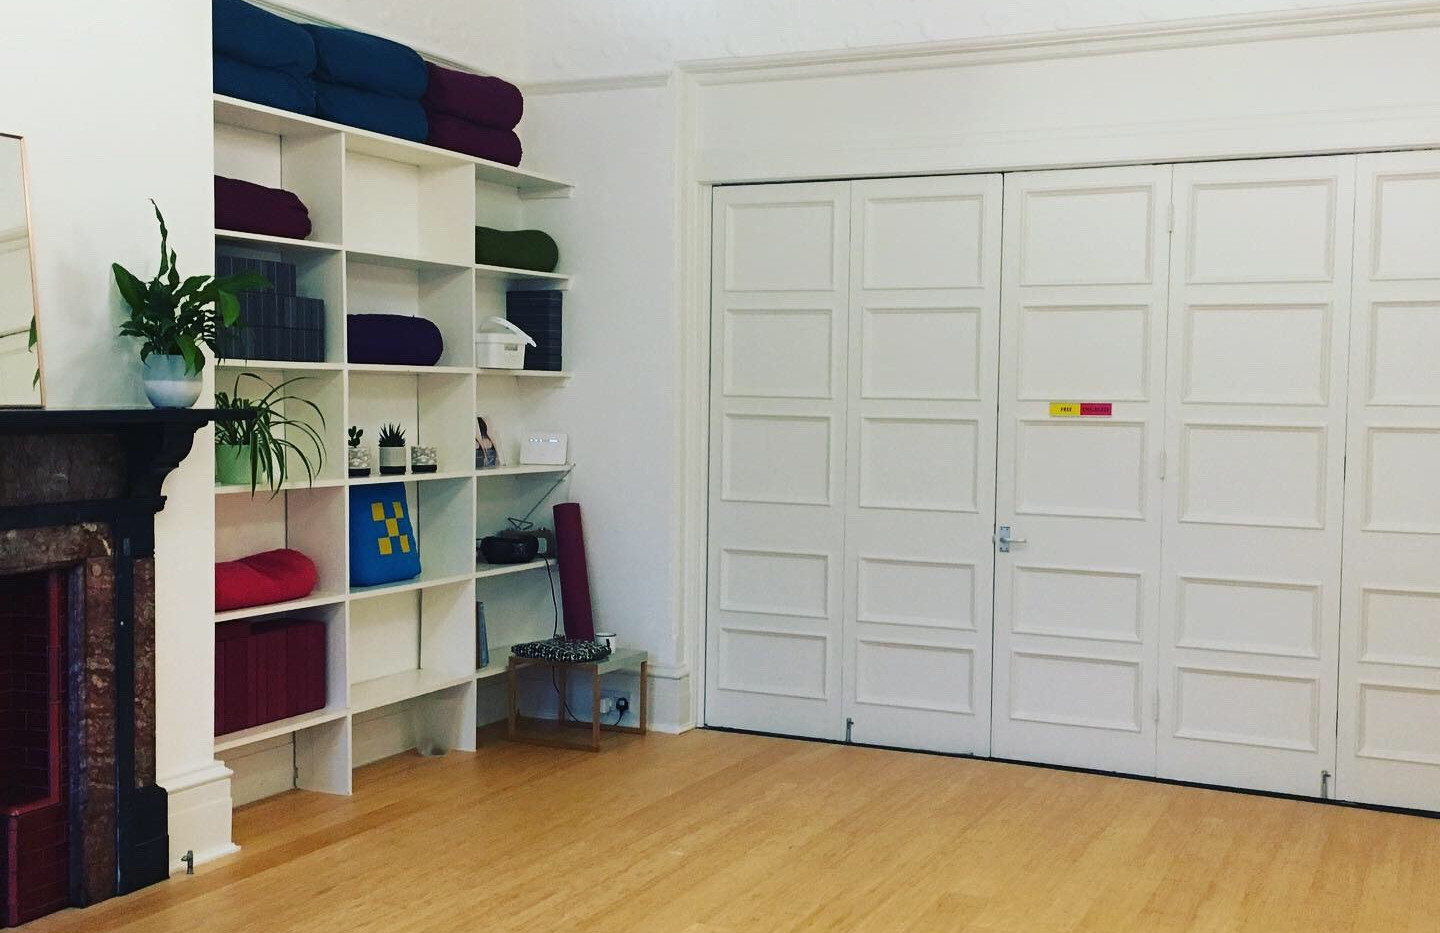 Partitioned Studio - two smaller rooms